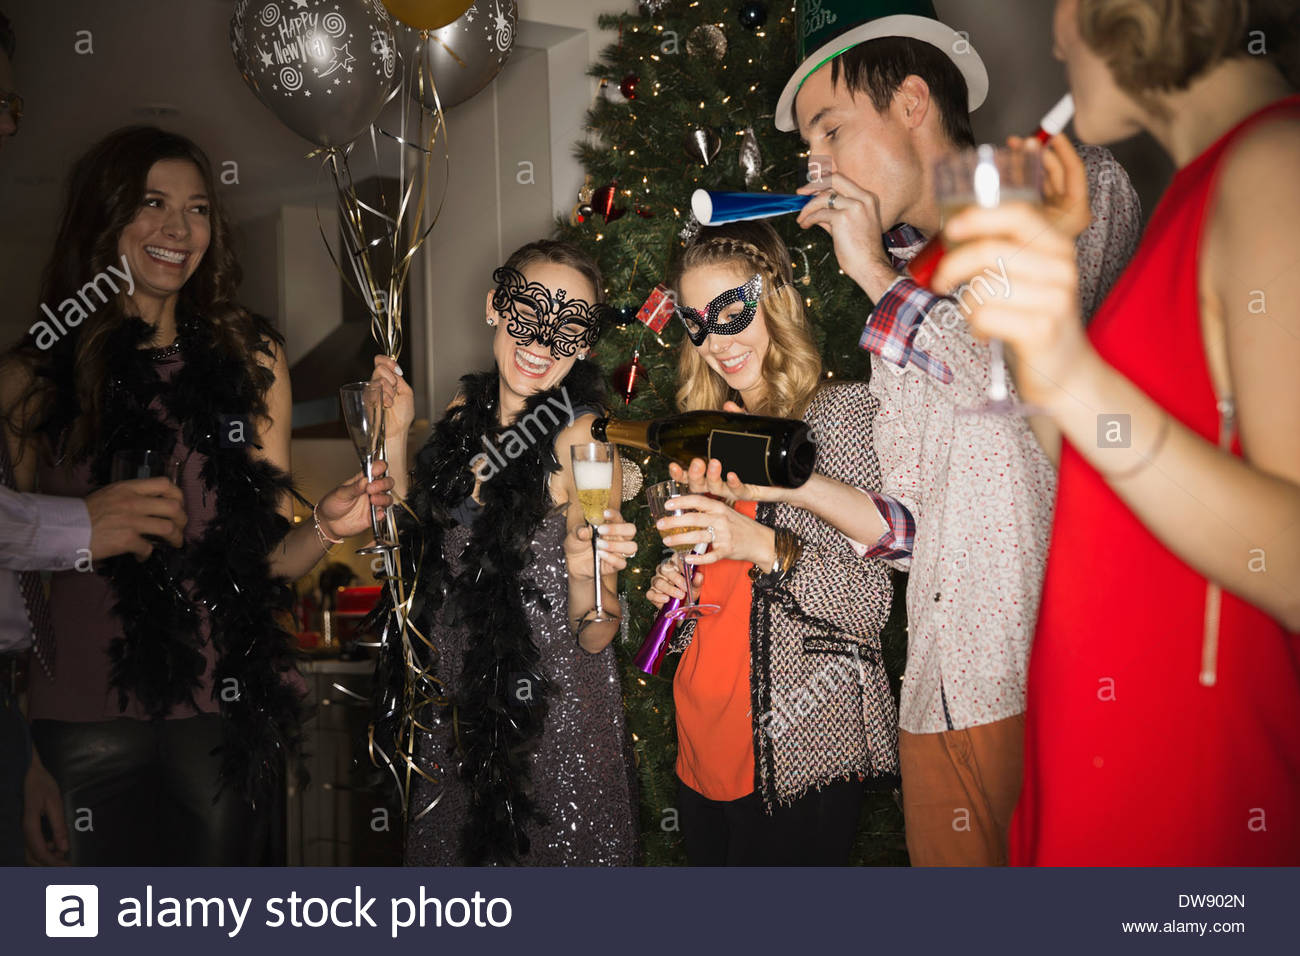 new years eve party stockfotos new years eve party bilder seite 2 alamy. Black Bedroom Furniture Sets. Home Design Ideas